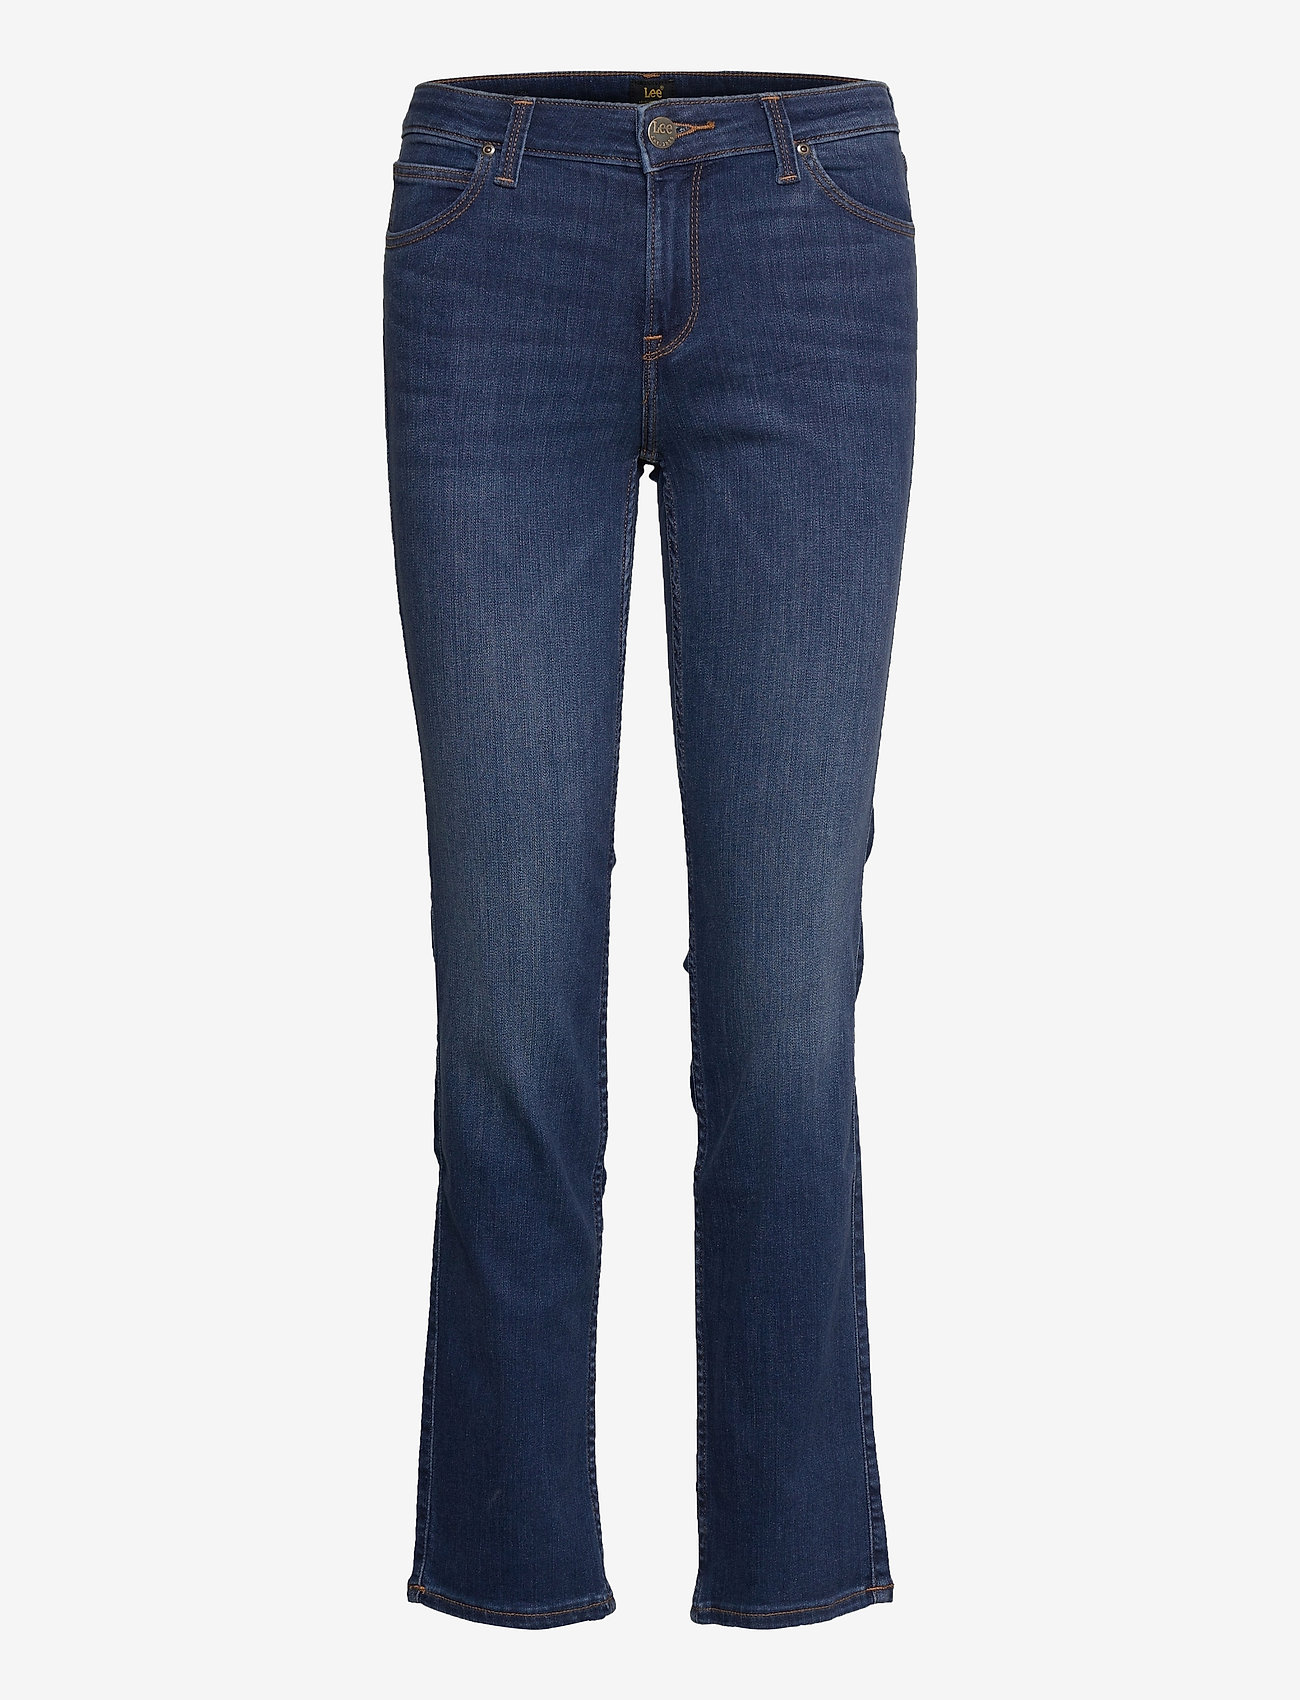 Lee Jeans - MARION STRAIGHT - straight jeans - dark refined - 0